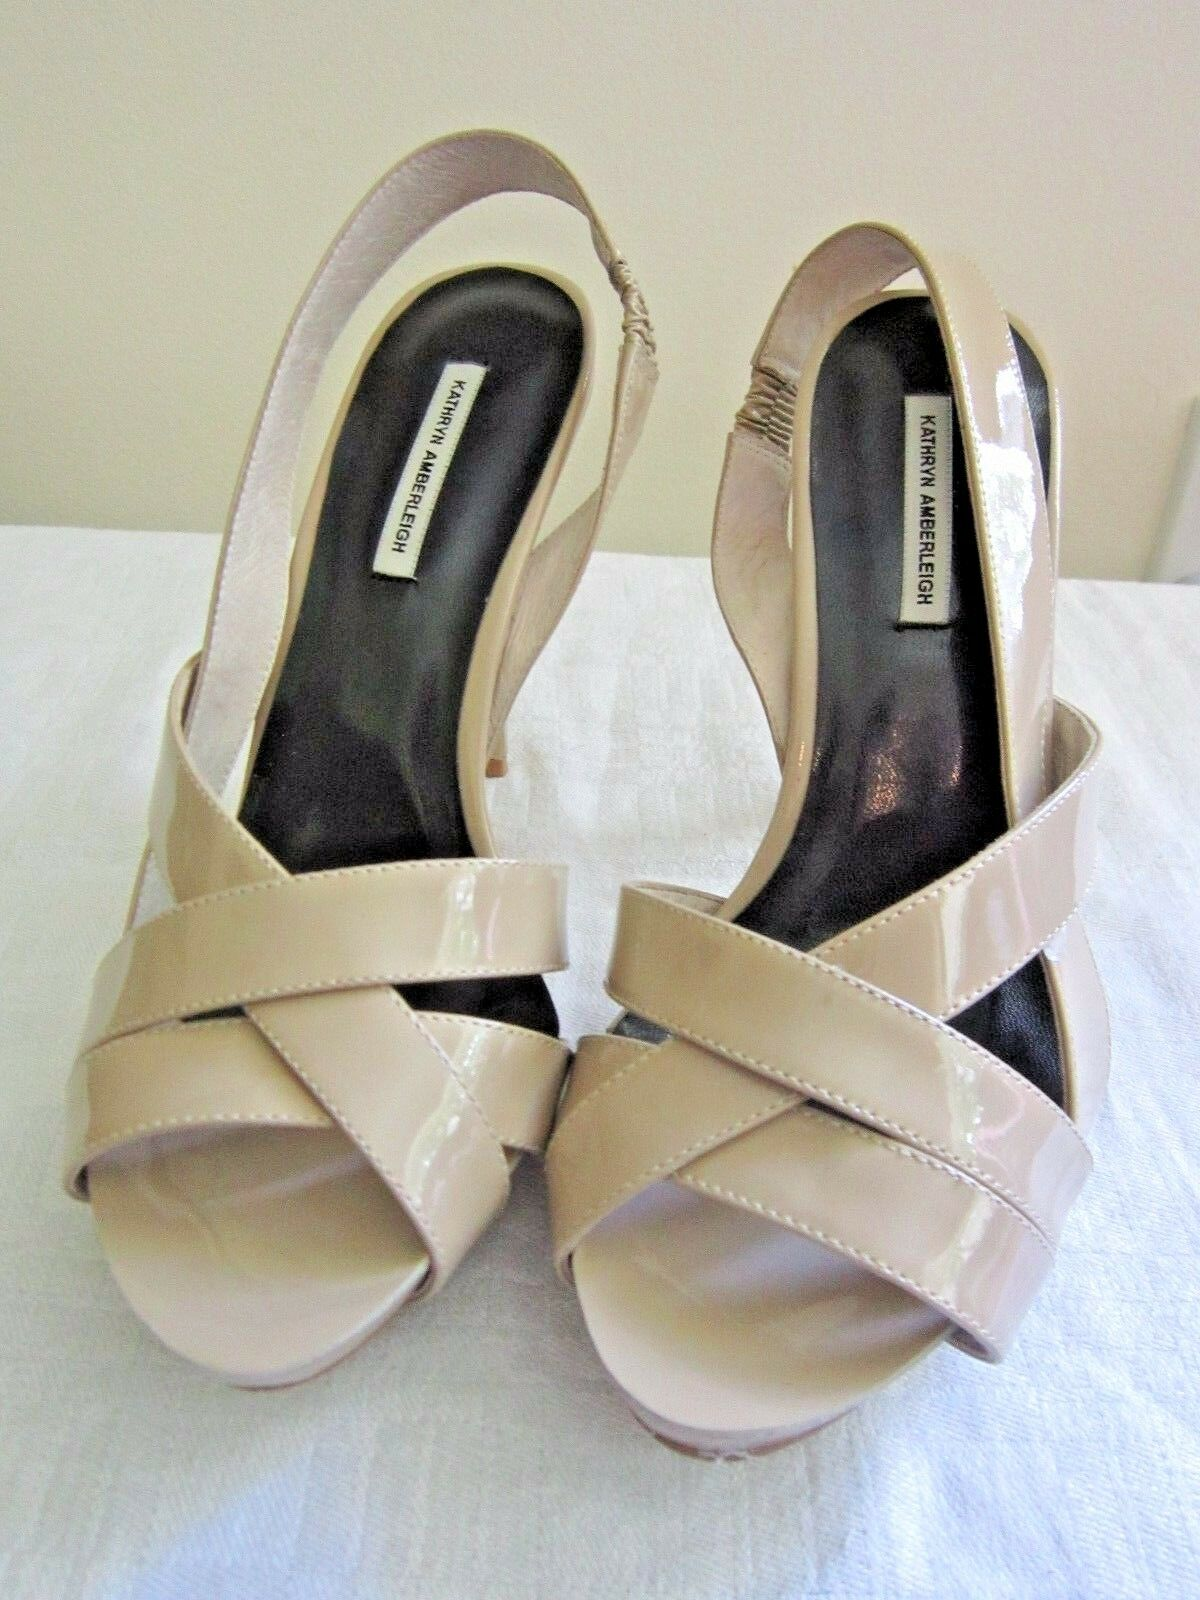 NEW BOX KATHRYN AMBERLEIGH PATENT LEATHER SLINGBACKS NUDE 4 4 4  HEELS PUMPS 7.5 M 9fcc6d